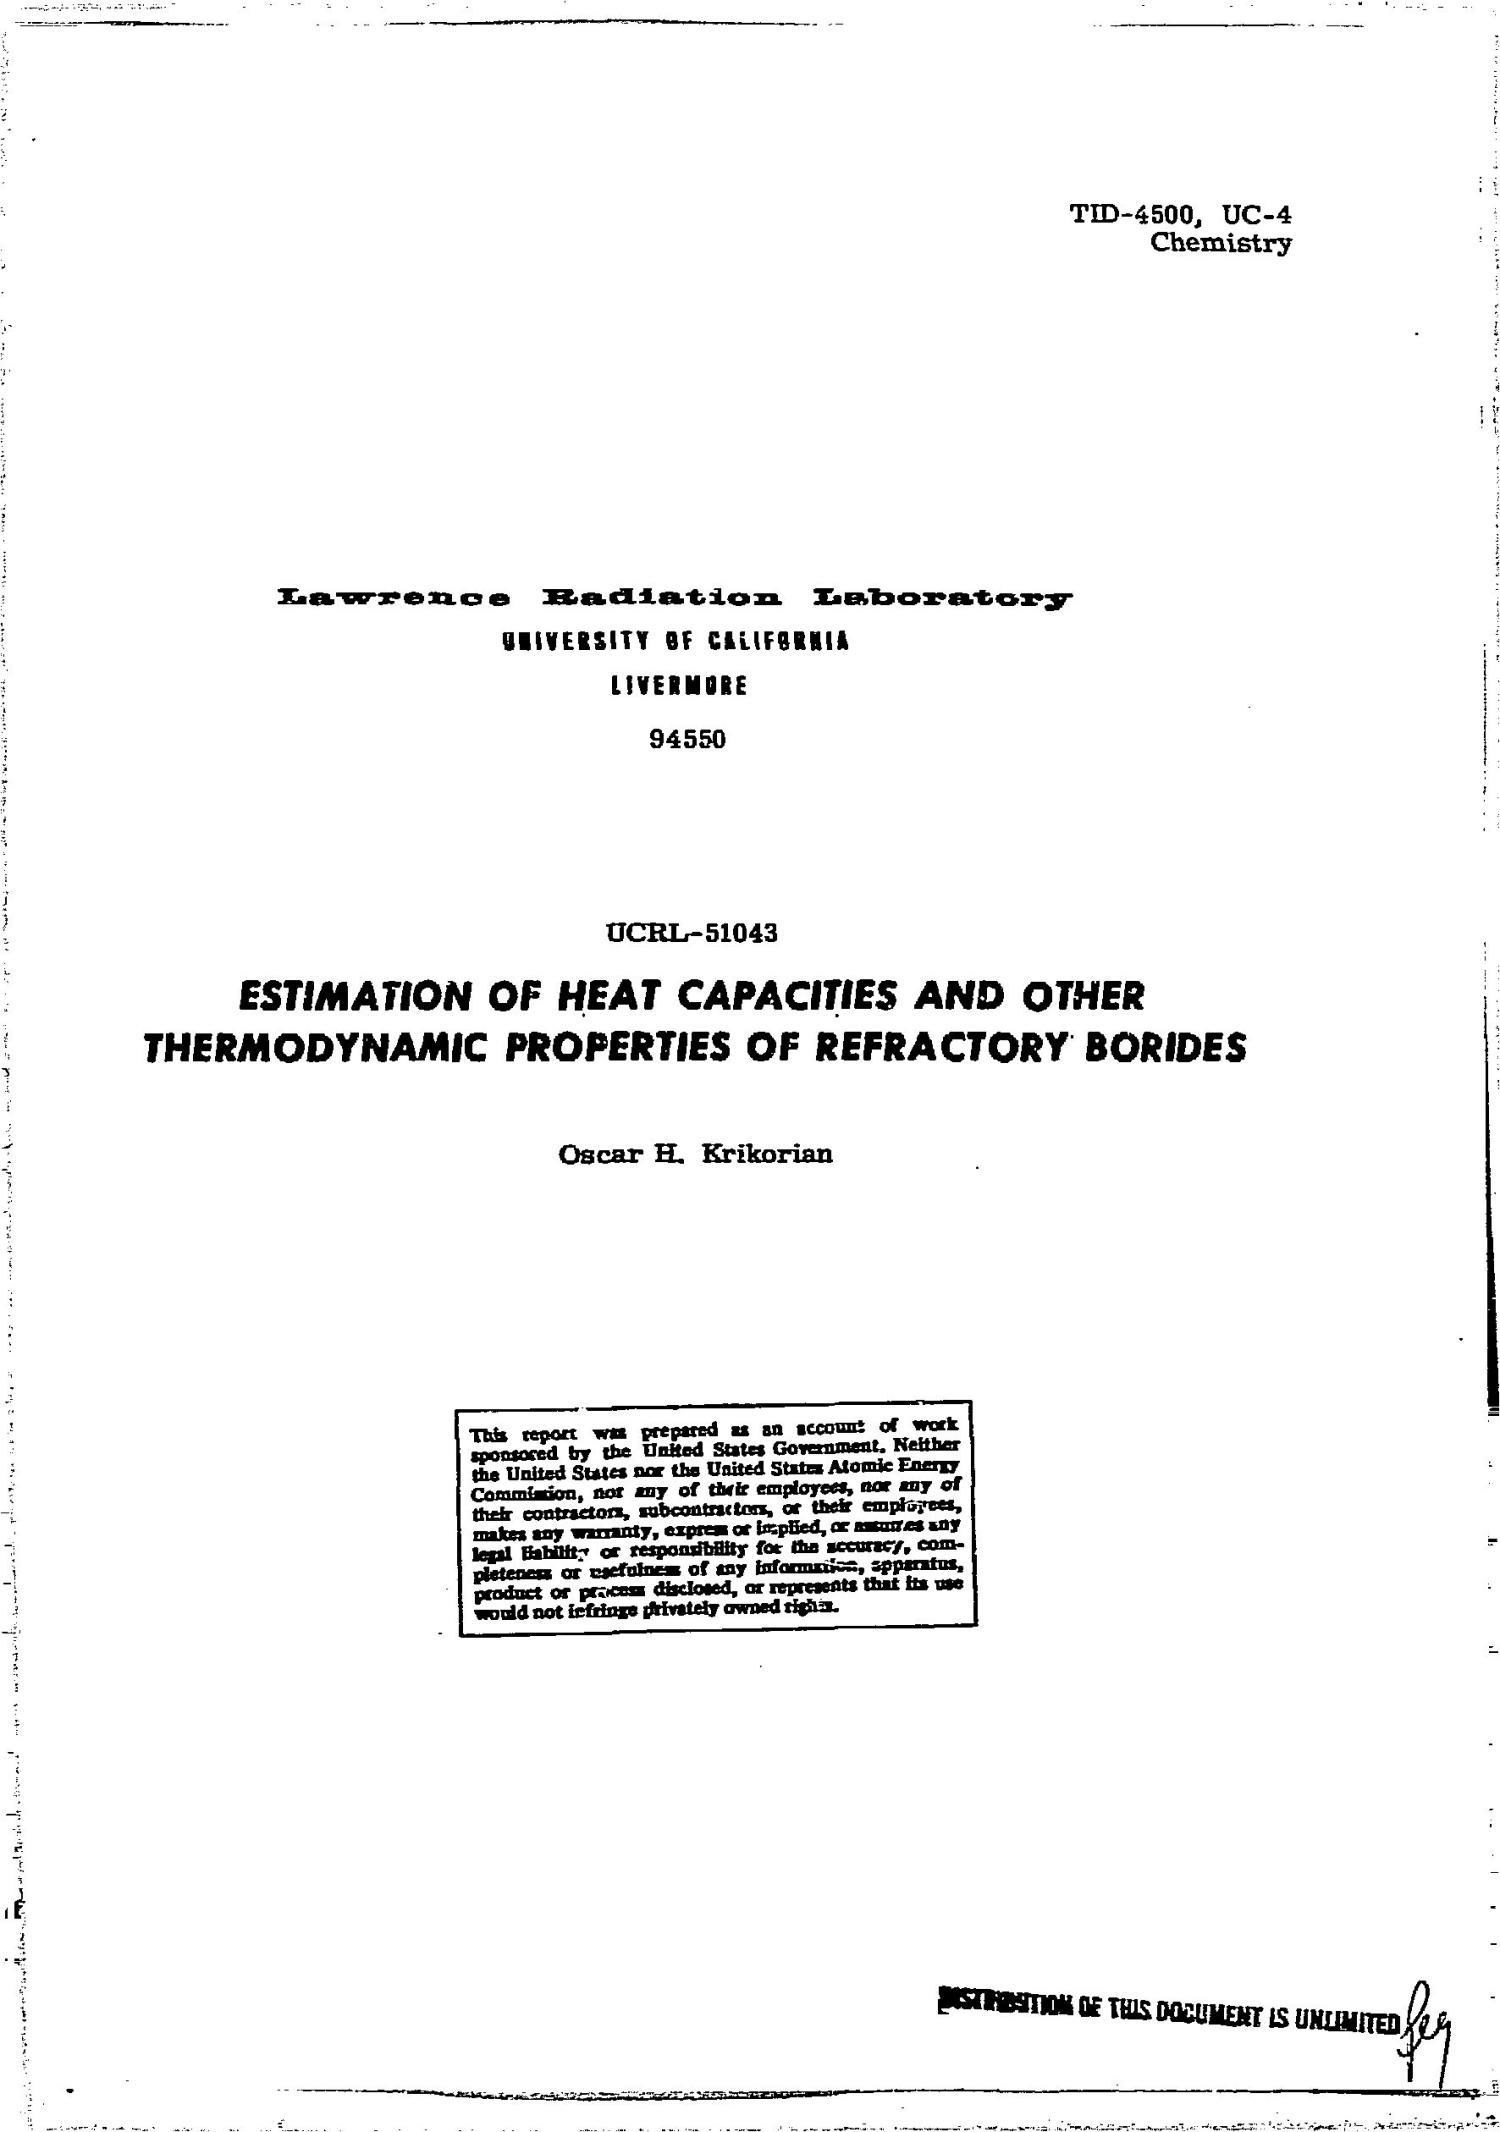 Estimation of Heat Capacities and Other Thermodynamic Properties of Refractory Borides.                                                                                                      [Sequence #]: 1 of 41